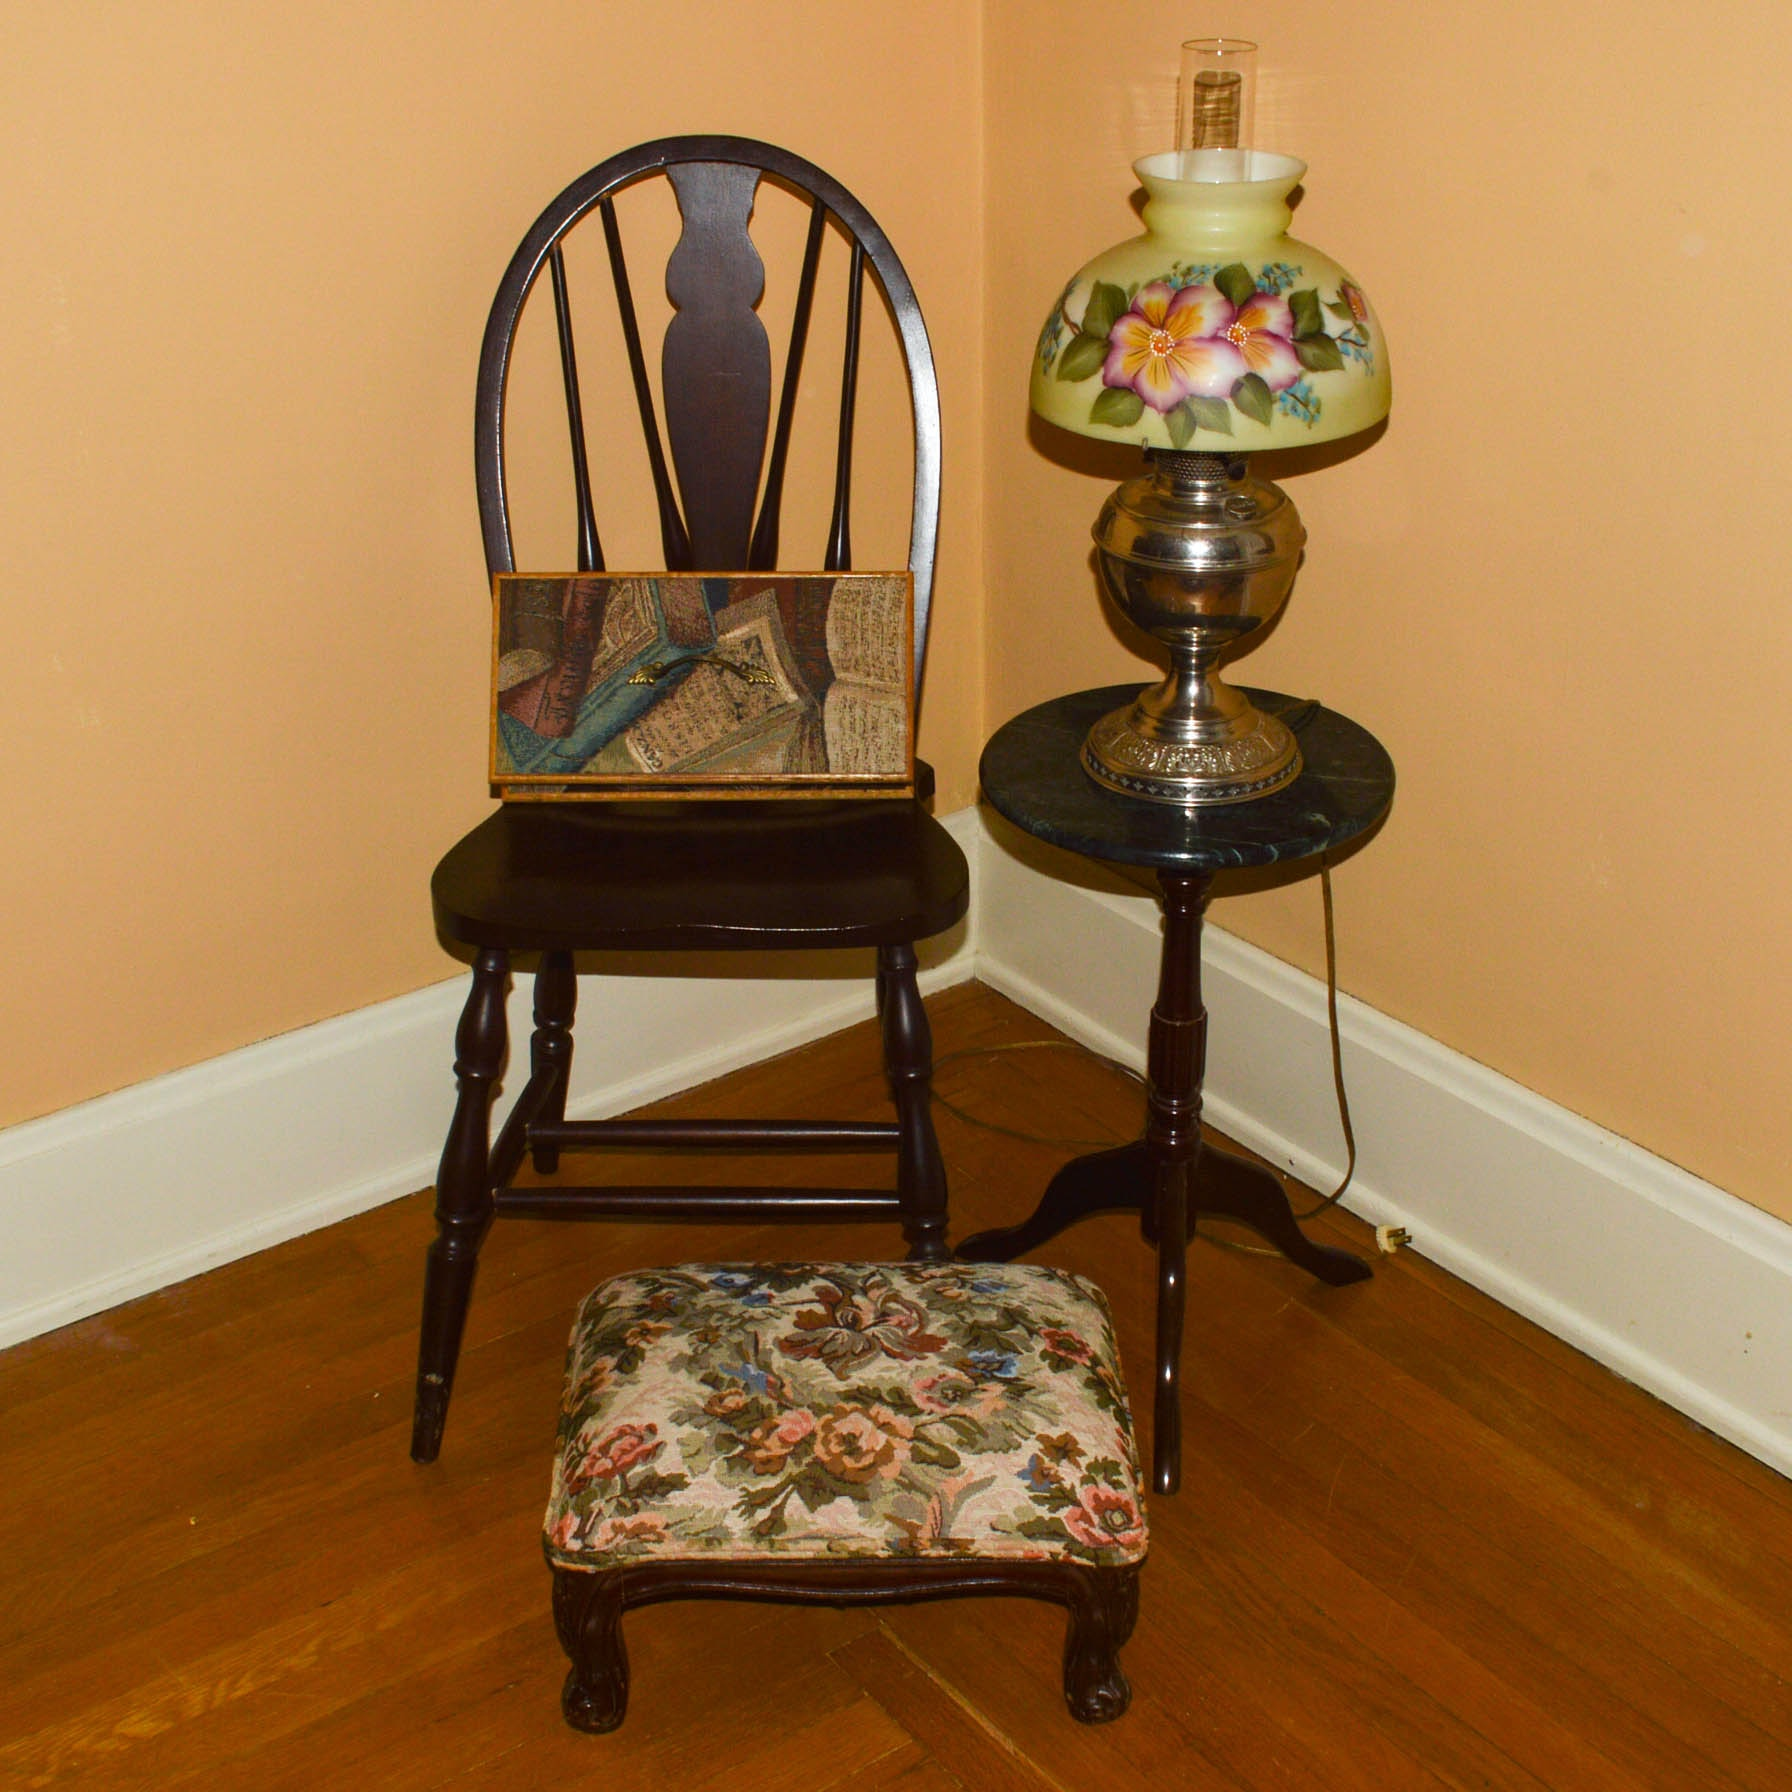 Windsor Chair, Table Lamp, Side Table, Foot Stool, and Storage Box